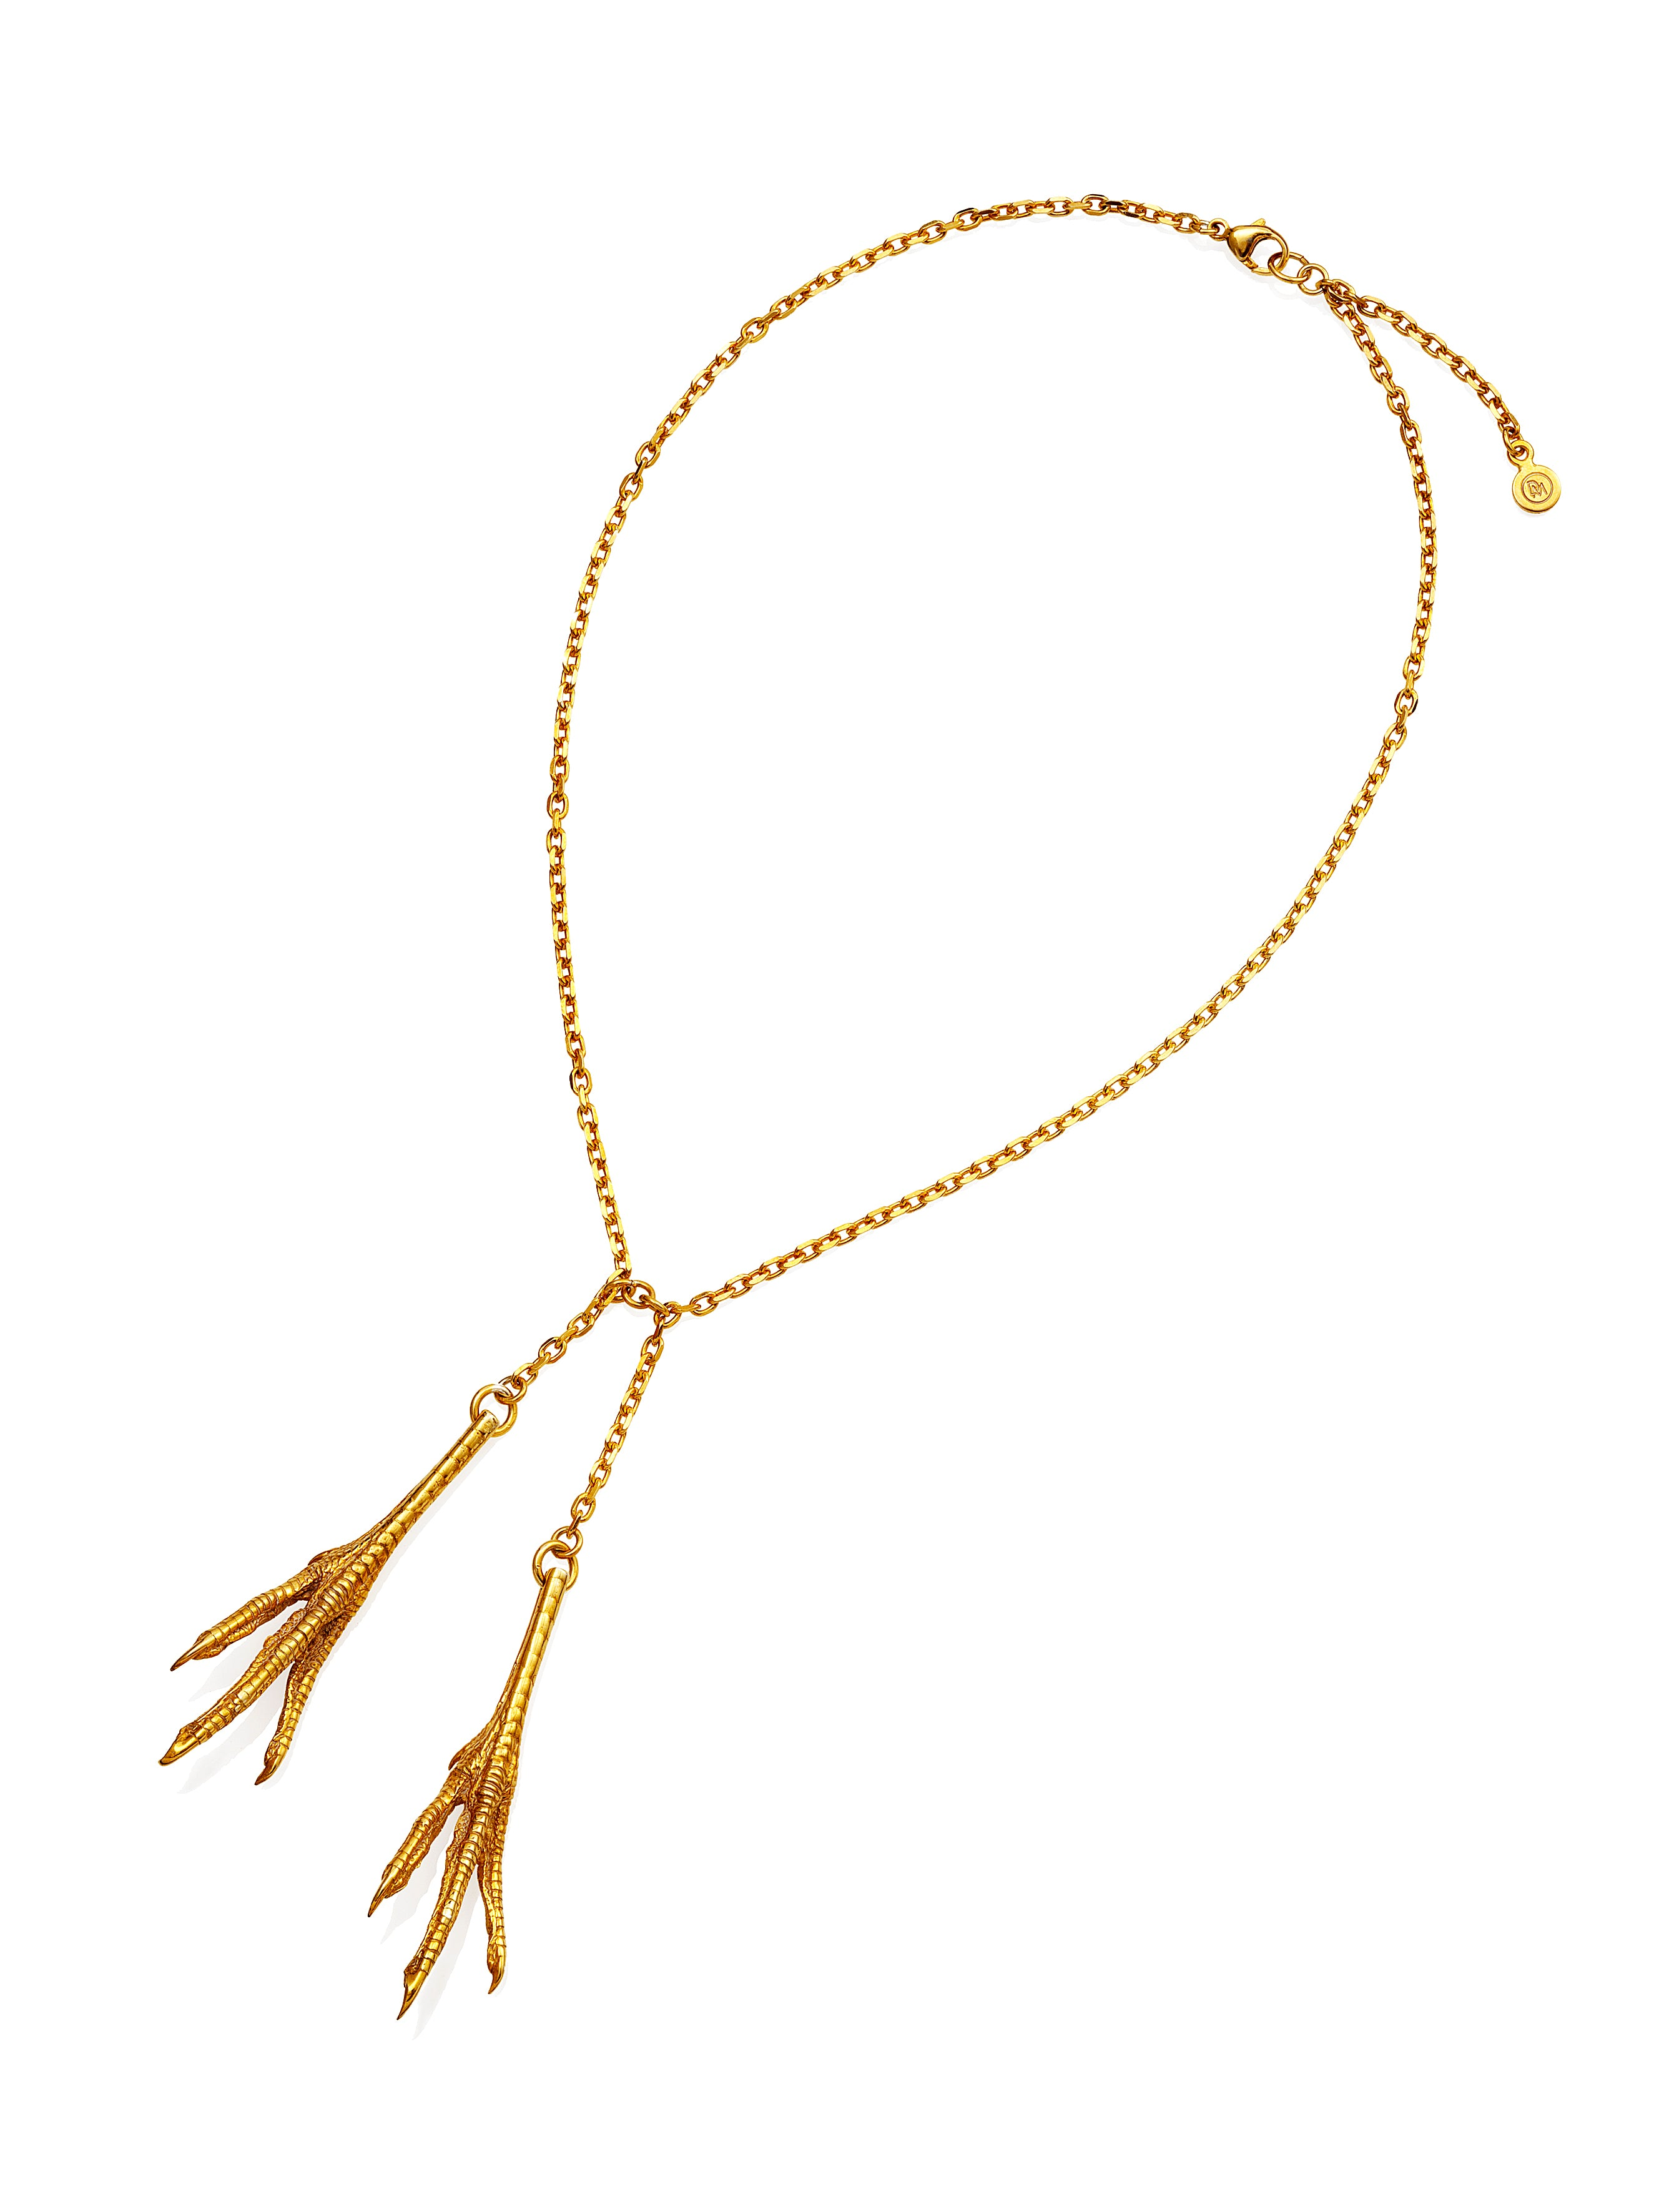 Chicken Feet Necklace Double gold plated